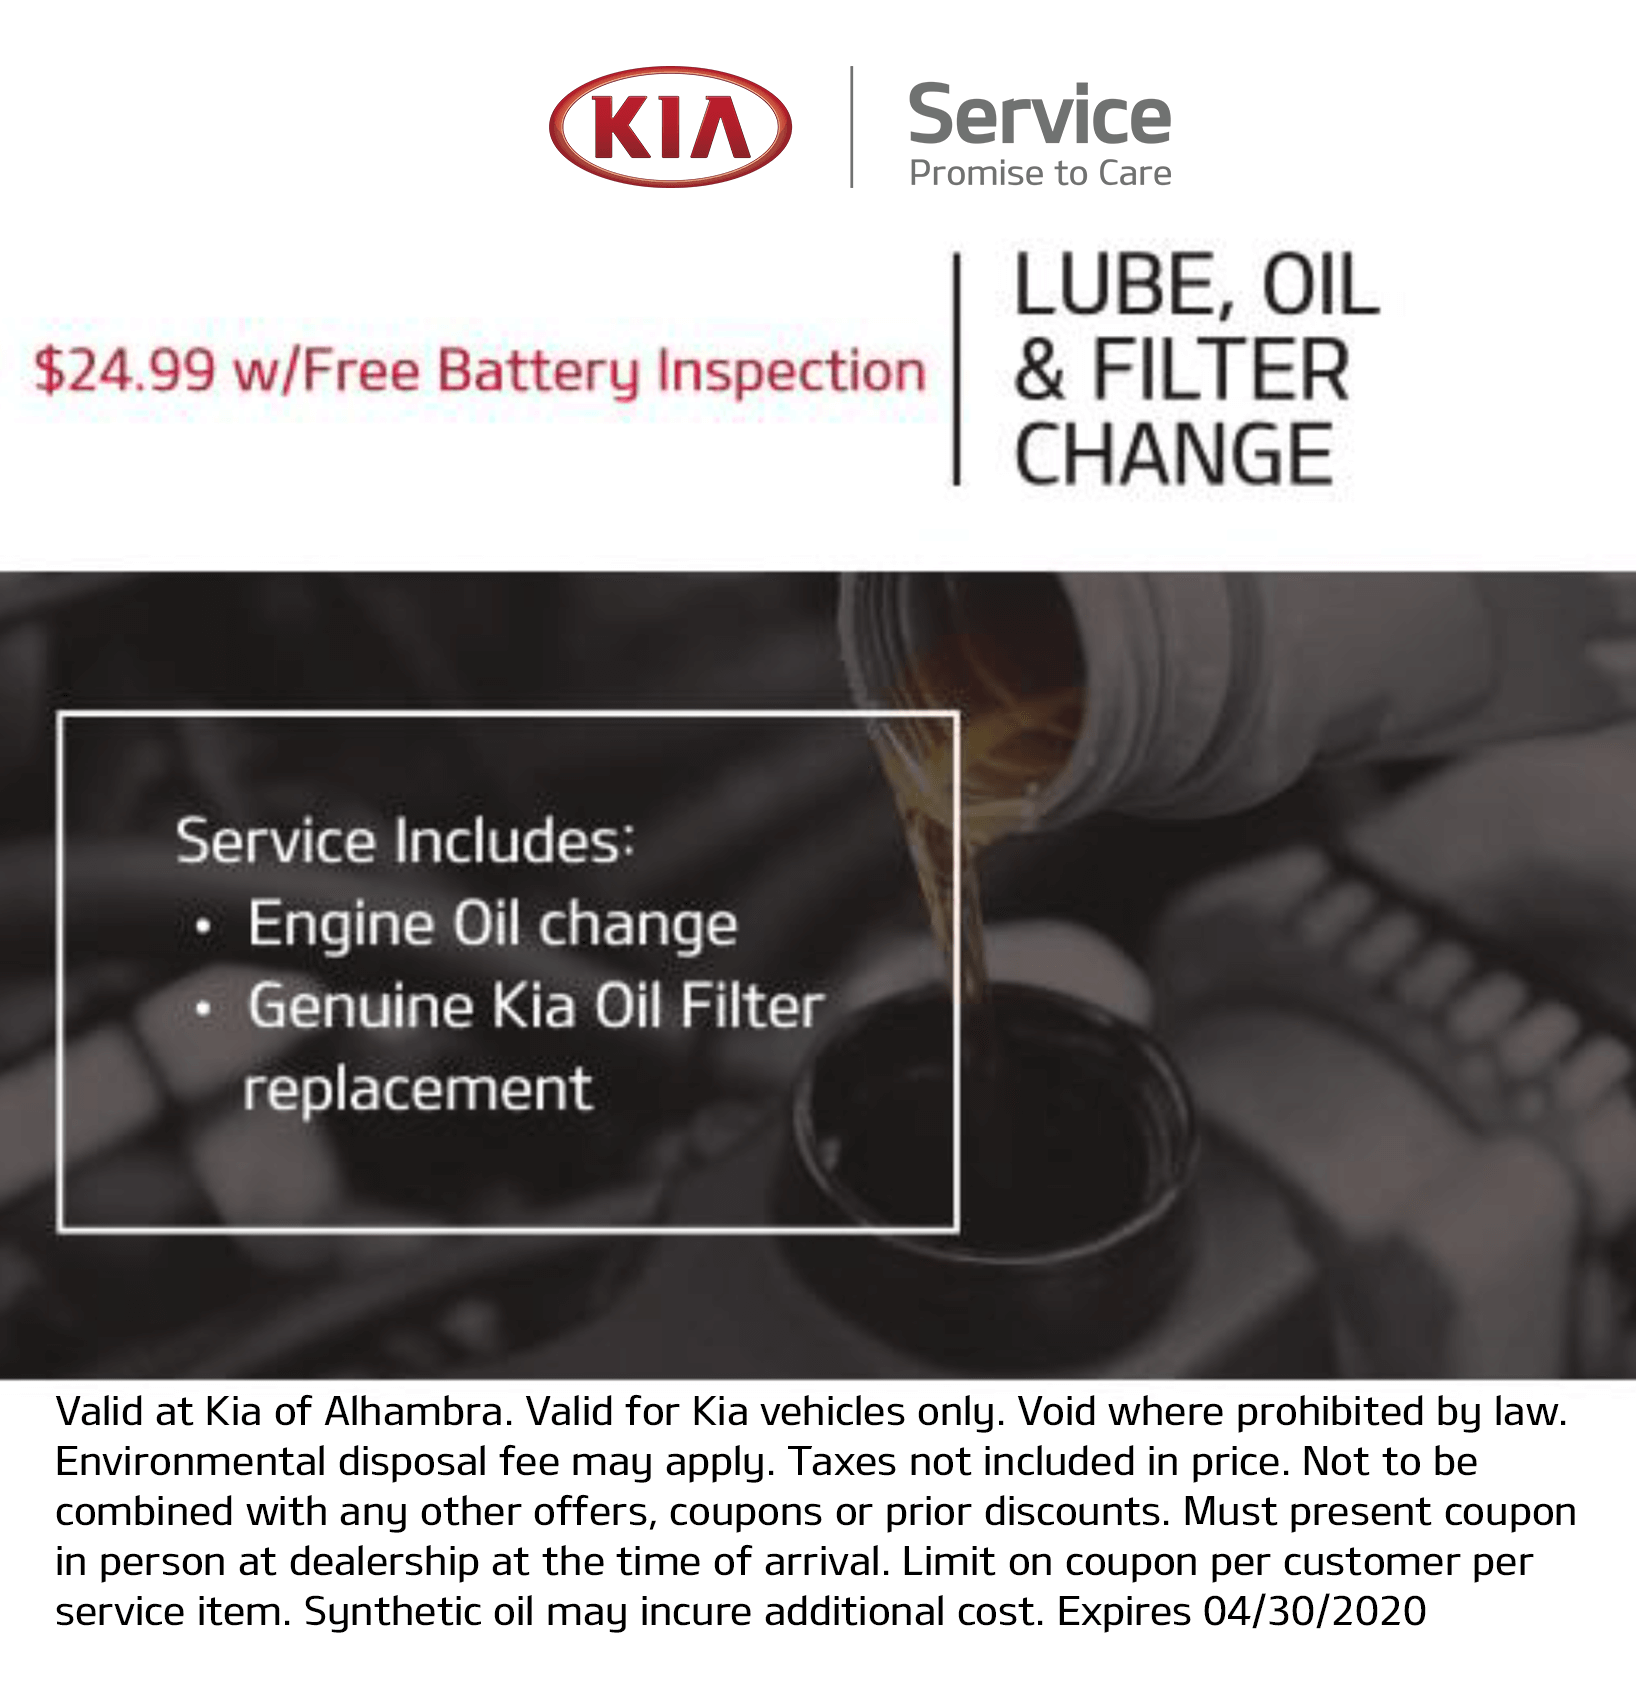 Lube, Oil and Filter Change